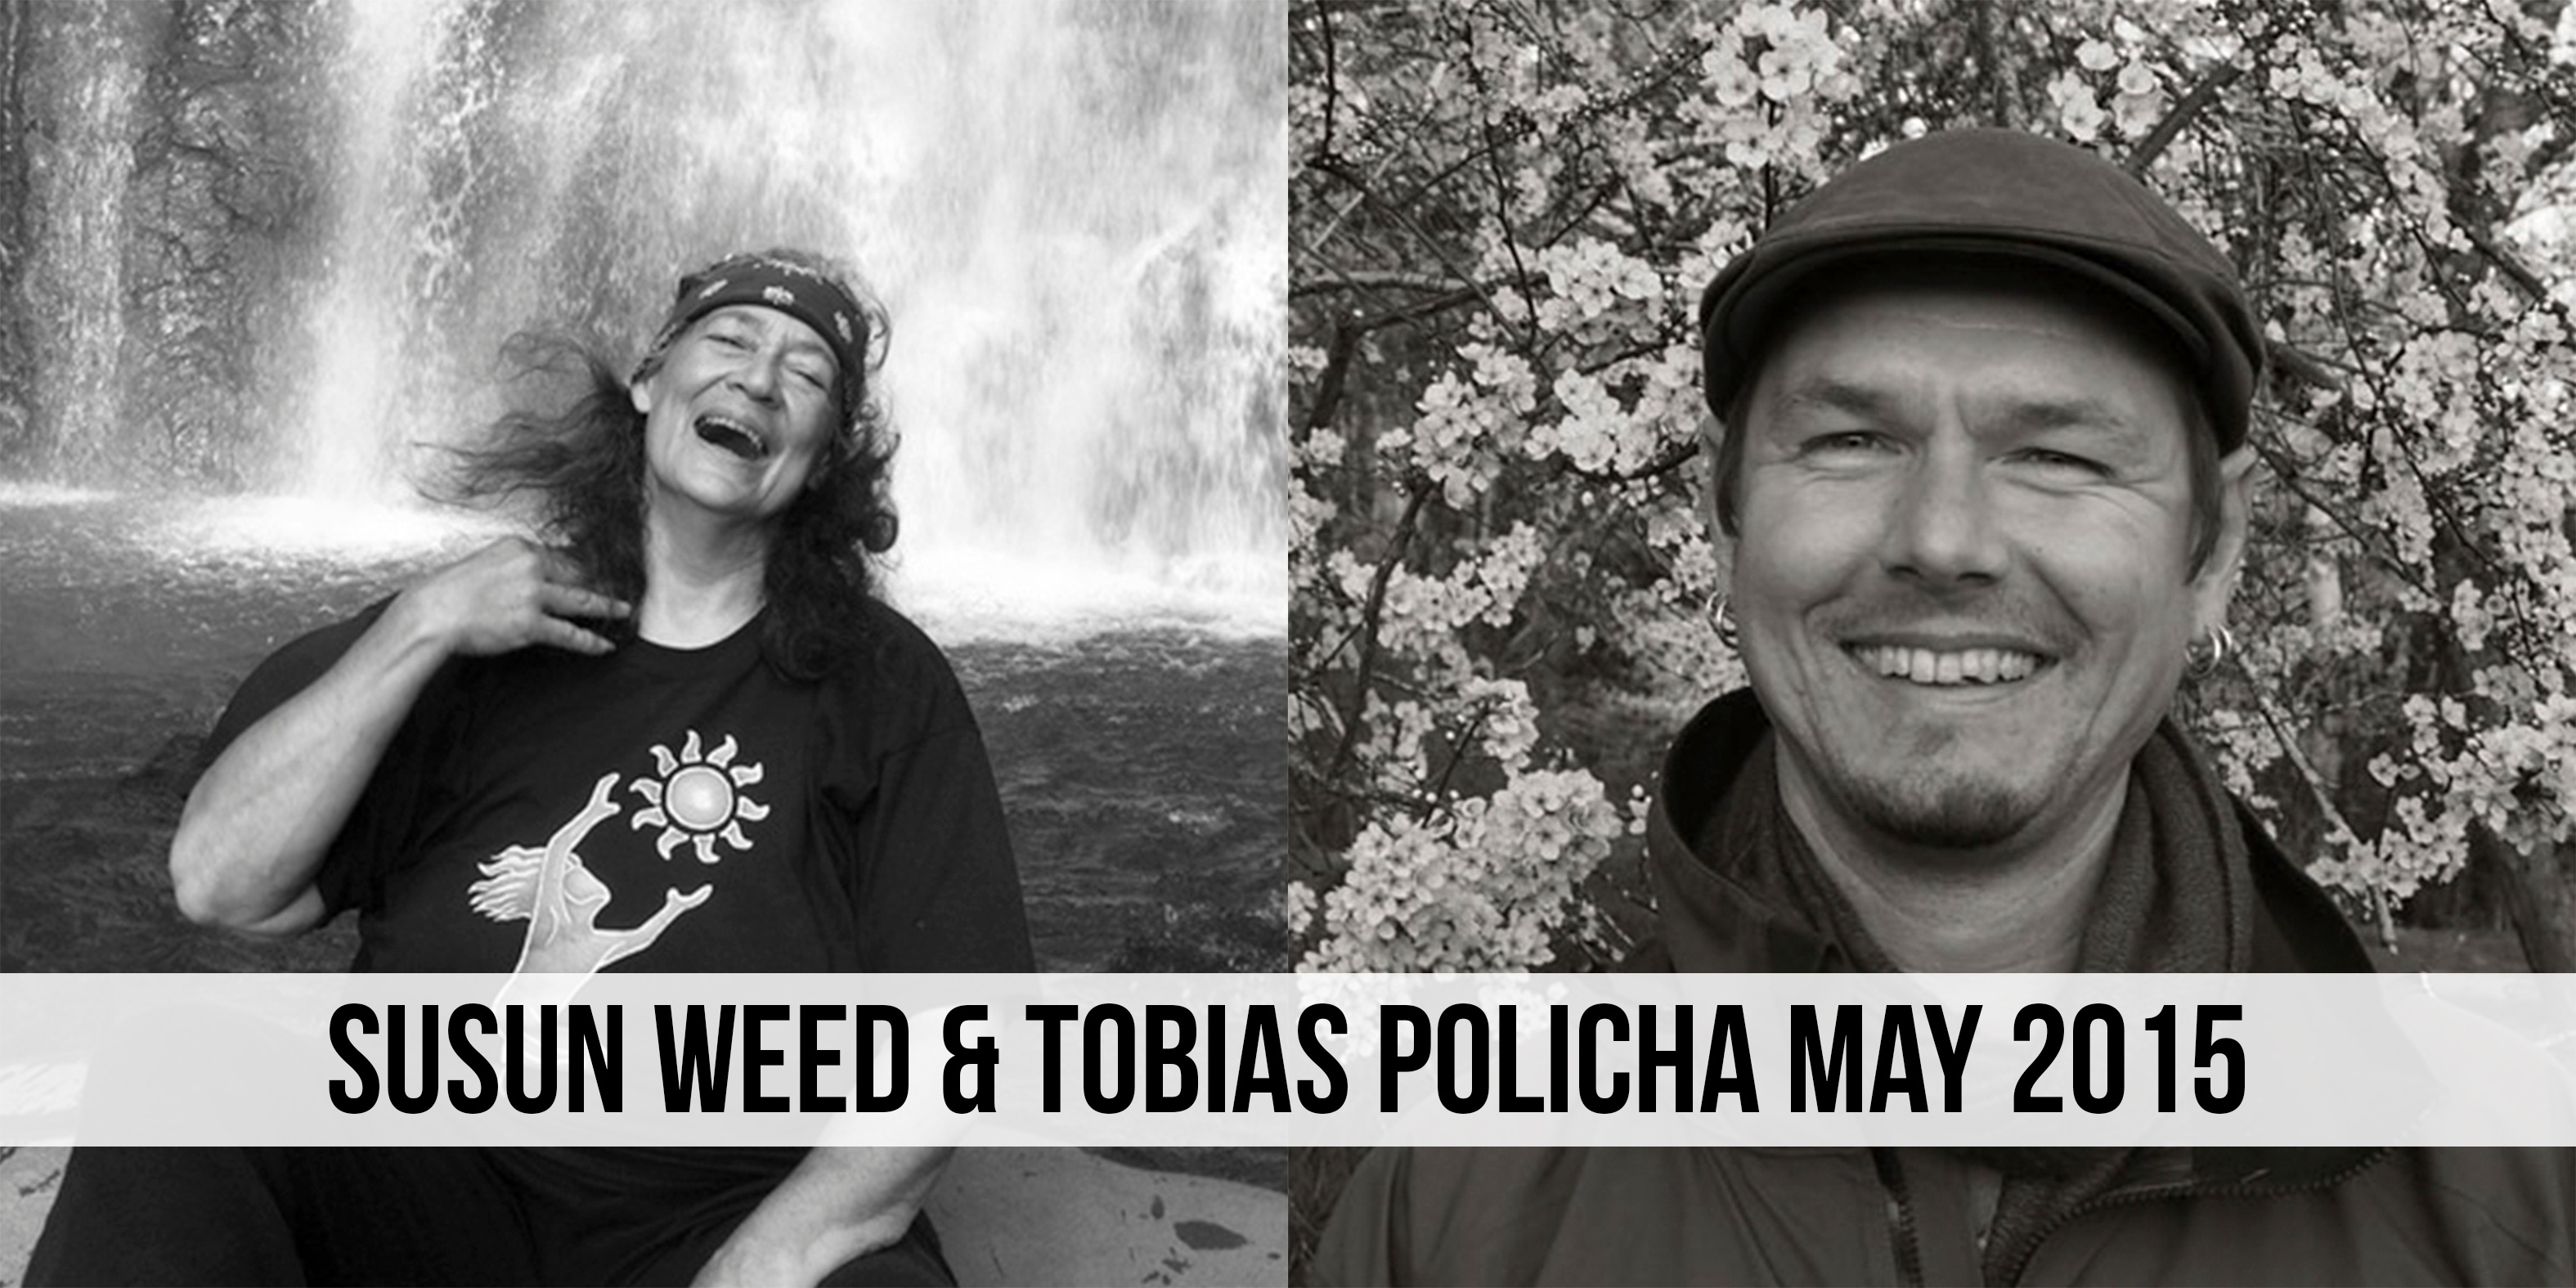 Susun Weed & Tobias Poolicha May 2015